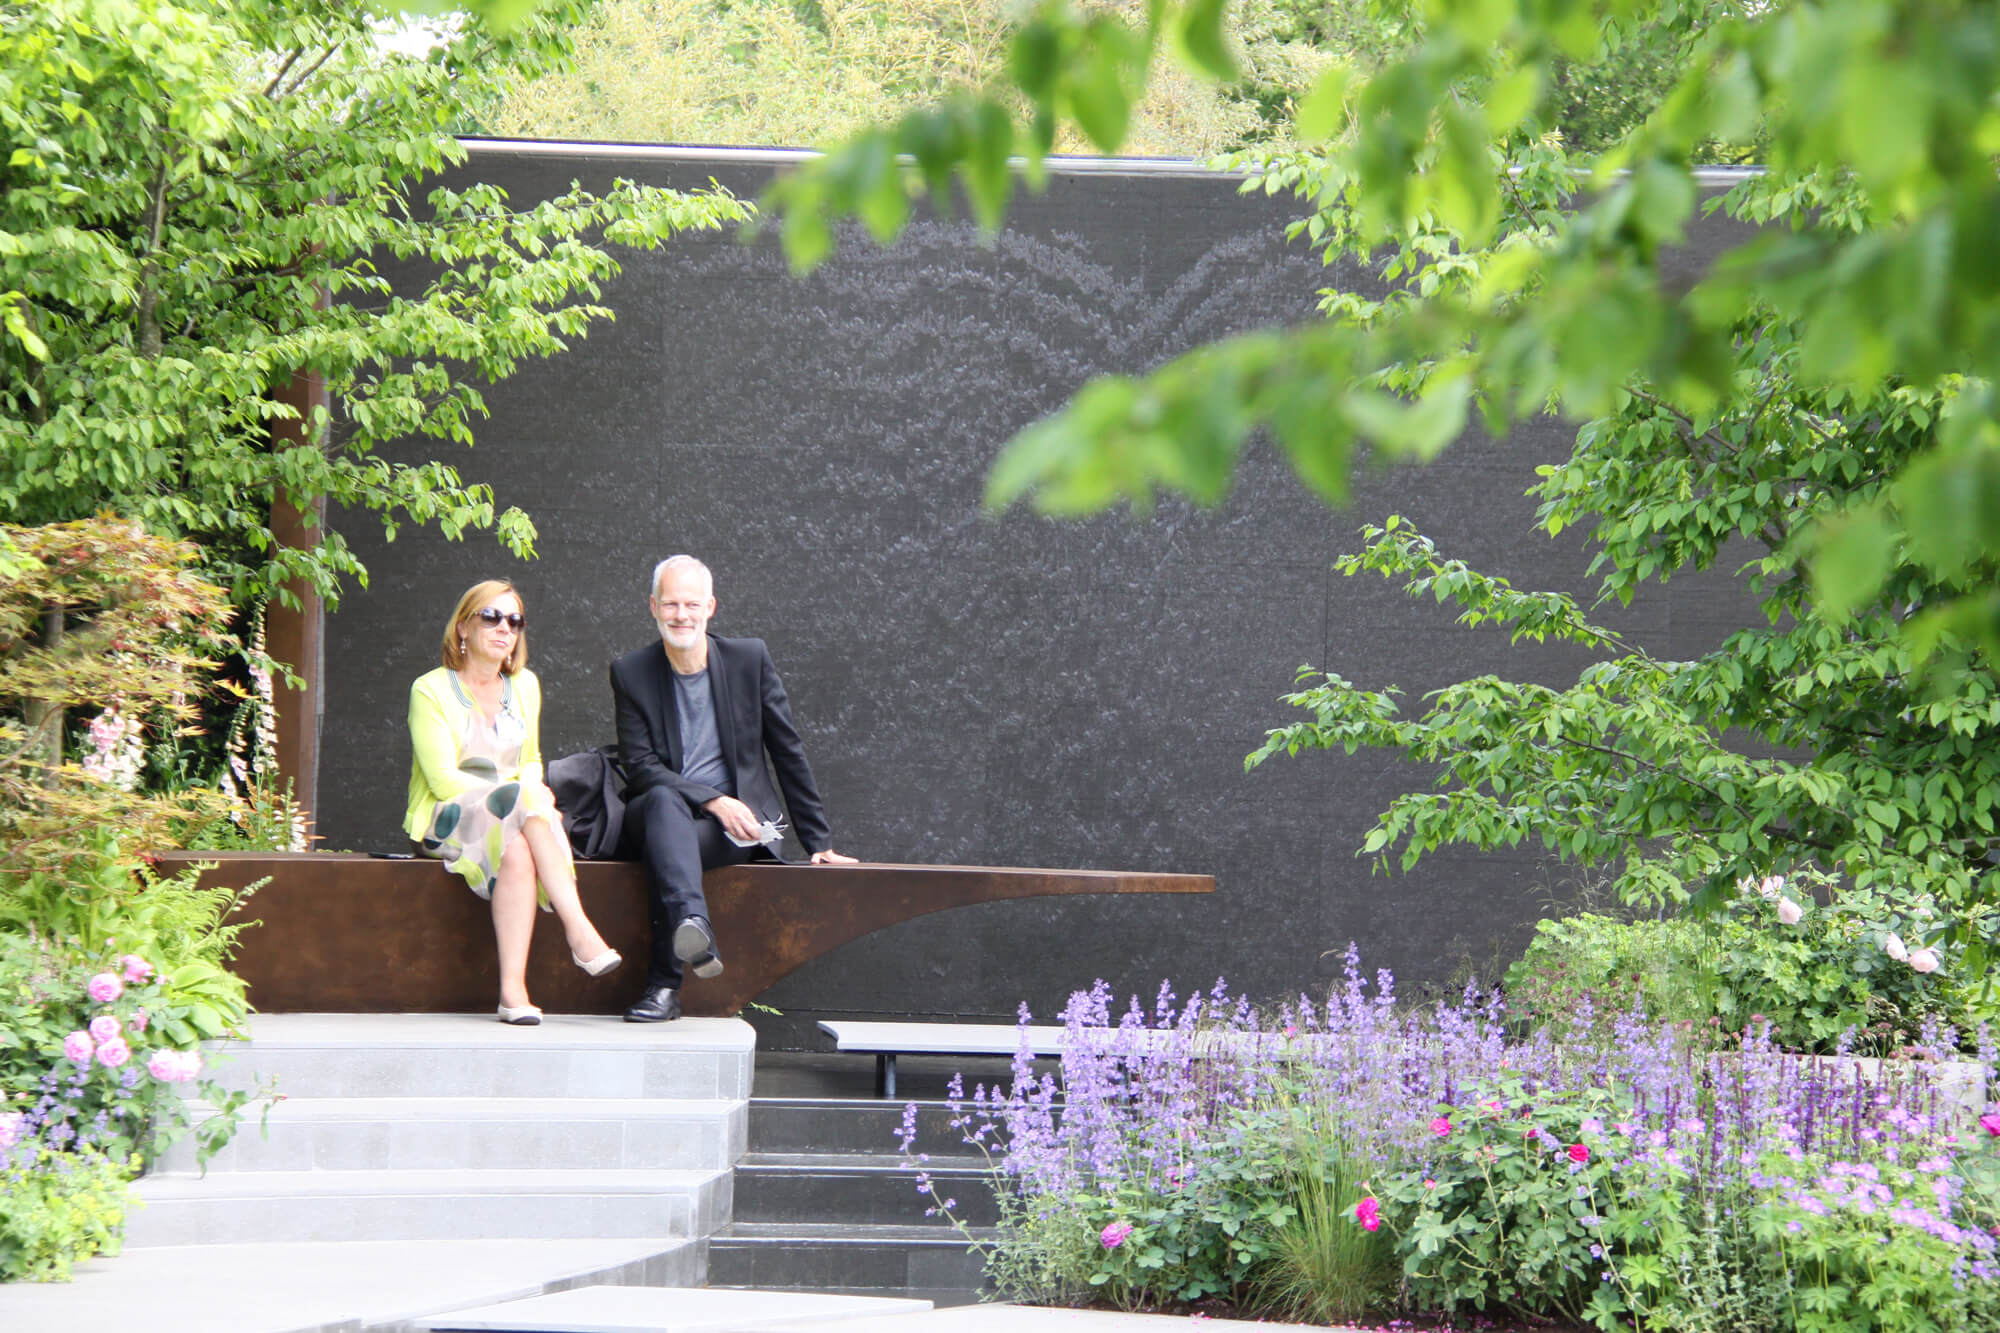 Garten inspiration an der chelsea flower show london for Garten ideen 2016